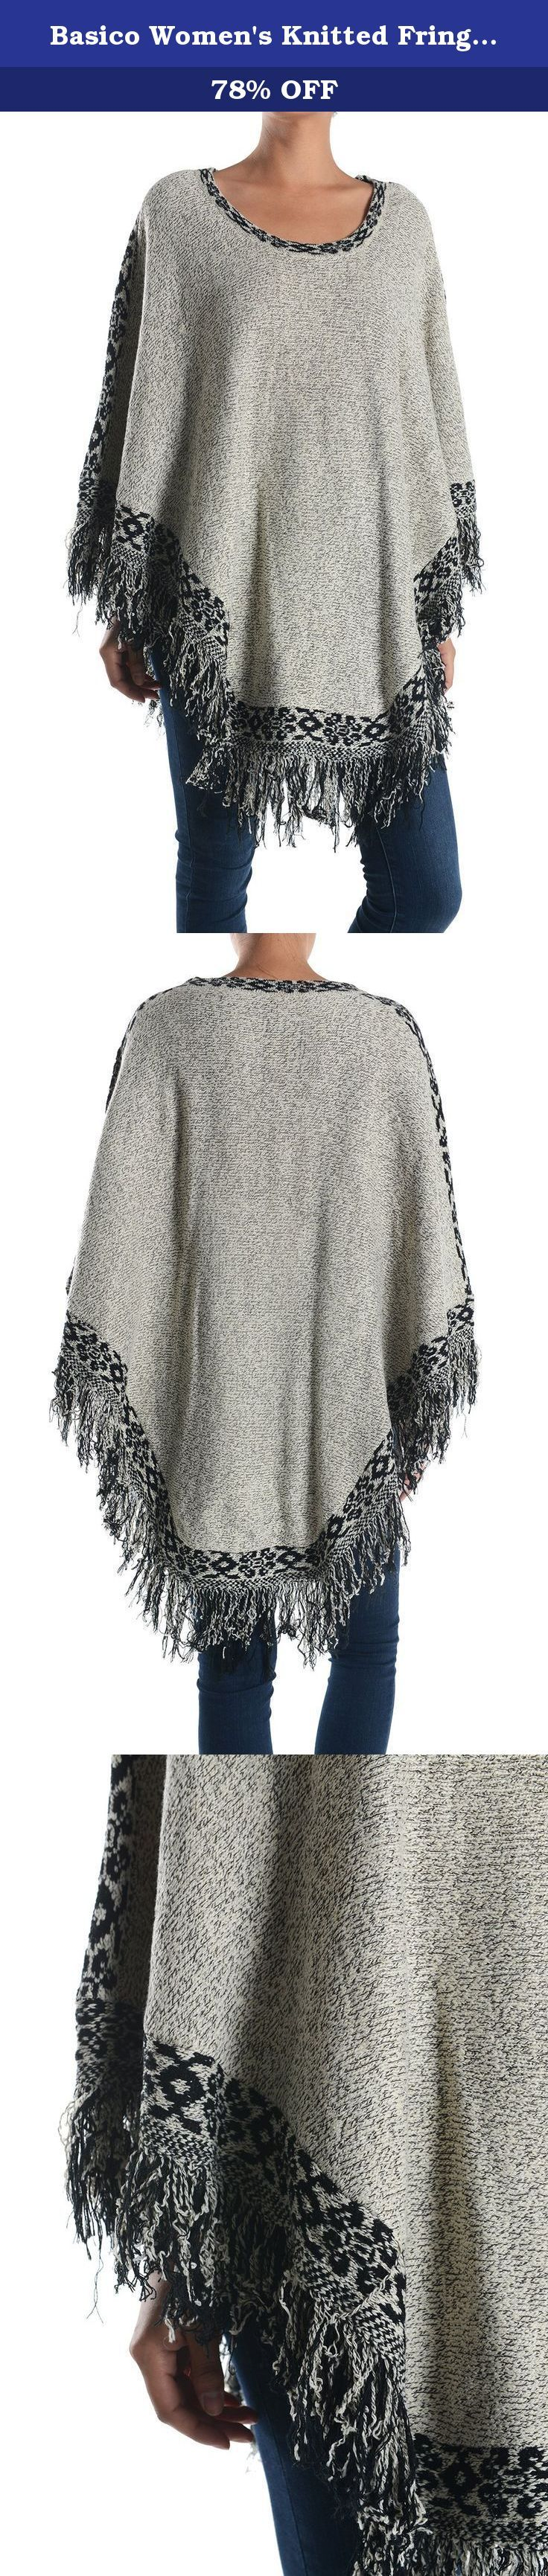 """Basico Women's Knitted Fringe Trim Sweater Poncho Cape Shawl Wrap One Size(Aztec Trim Poncho). The measurements of the item are taken when laid flat • Length (from center neck to base point): 34"""" • Chest (at the widest point): 30"""" • Turtle Neck & Hoodie Height : 11"""" • Side seam: 21""""."""